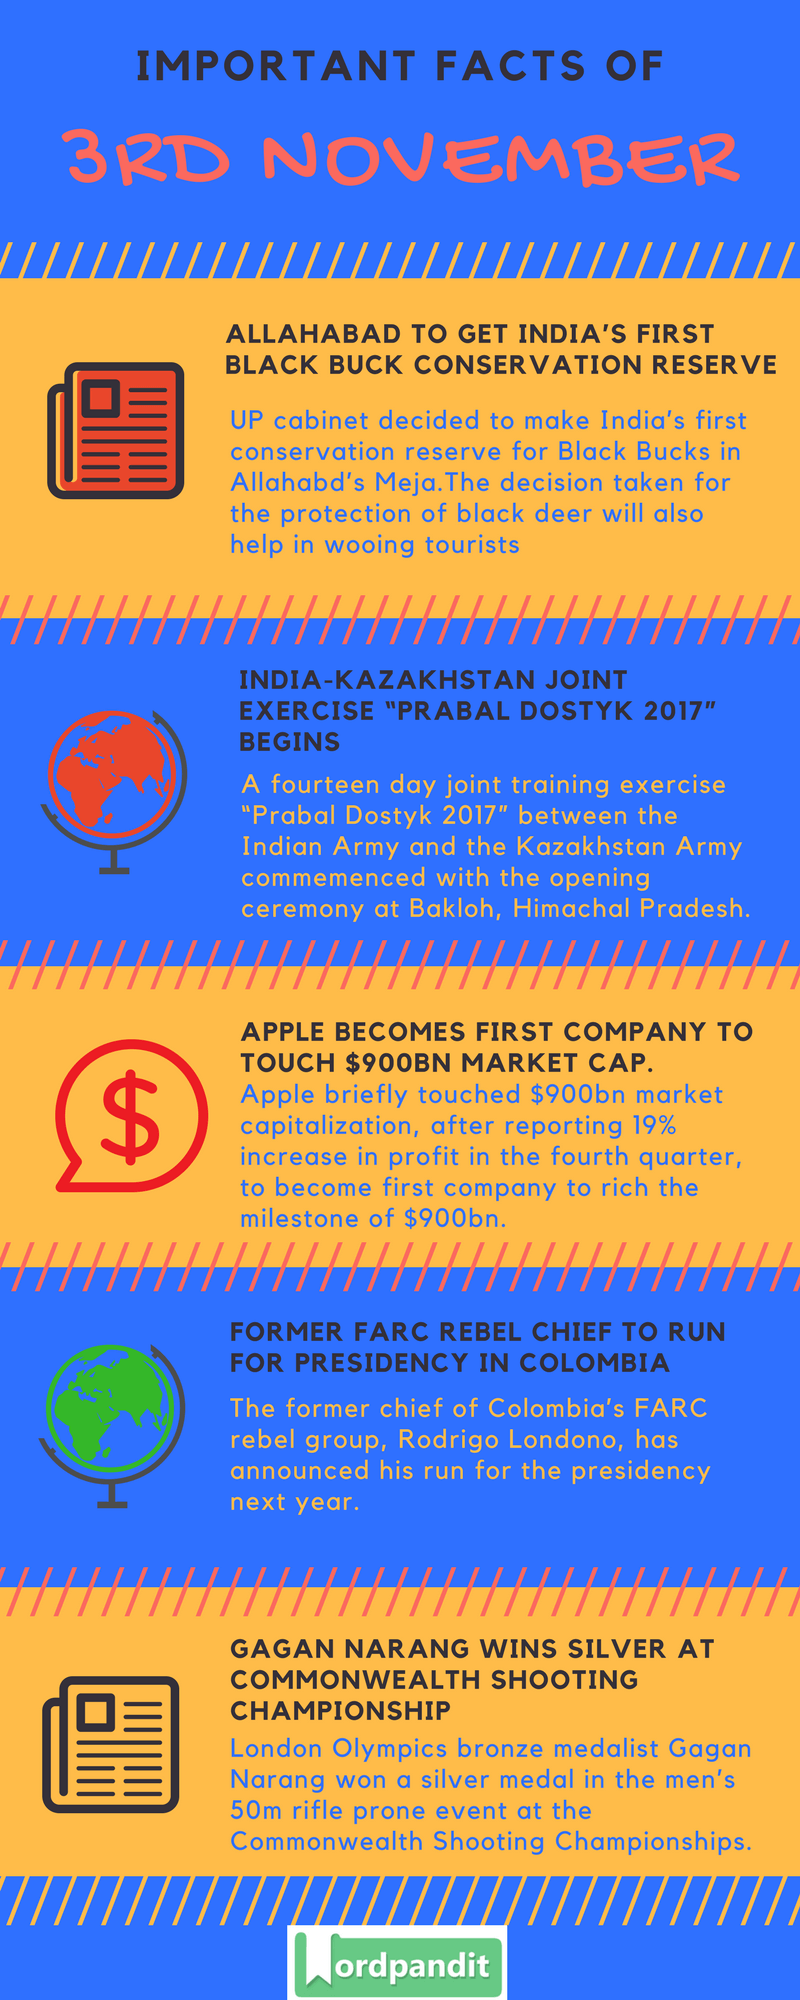 Daily-Current-Affairs-3-november-2017-Current-Affairs-Quiz-october-24-2017-Current-Affairs-Infographic